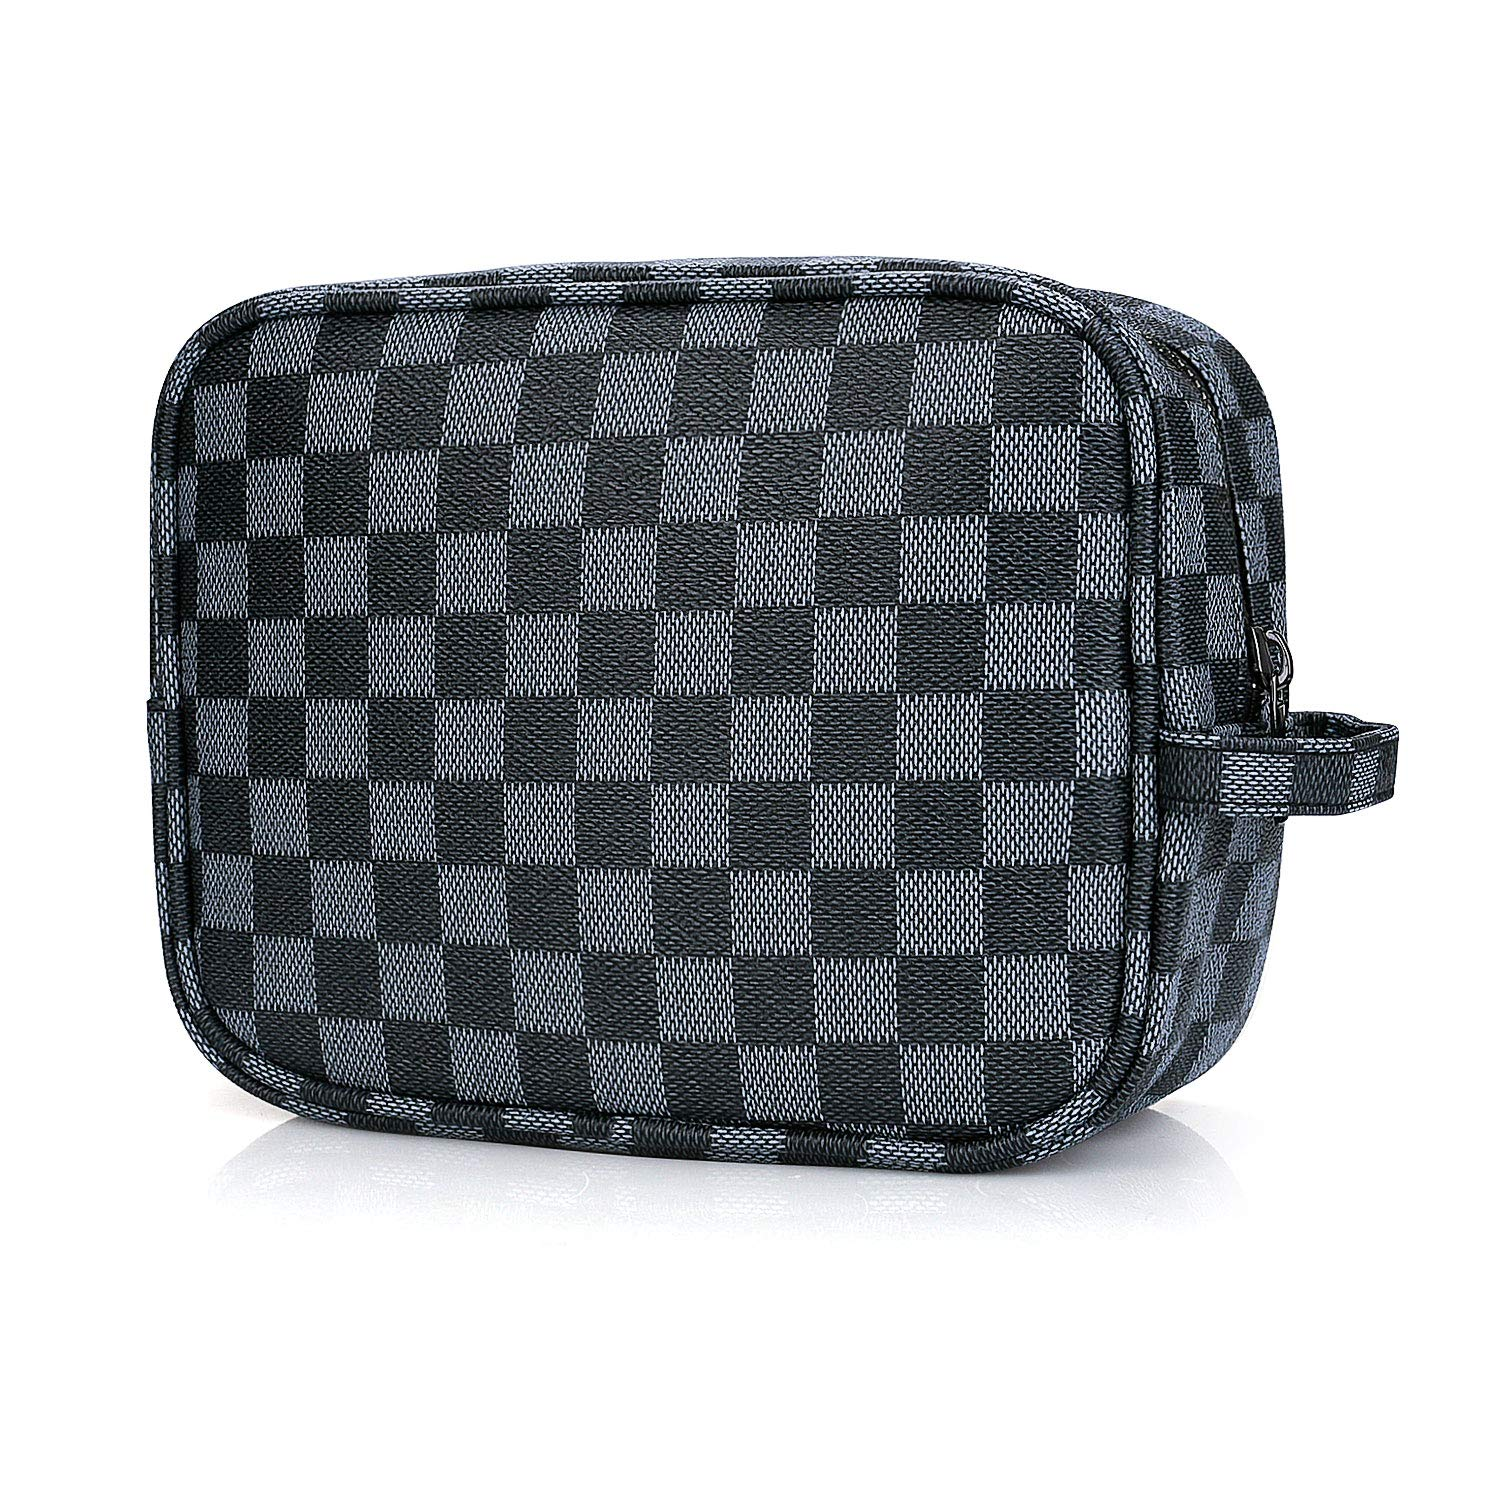 Sholov Cosmetic Bag Luxury Checkered Makeup Bag for Women Multifunctional Portable Leather Travel Organizer Navy Blue